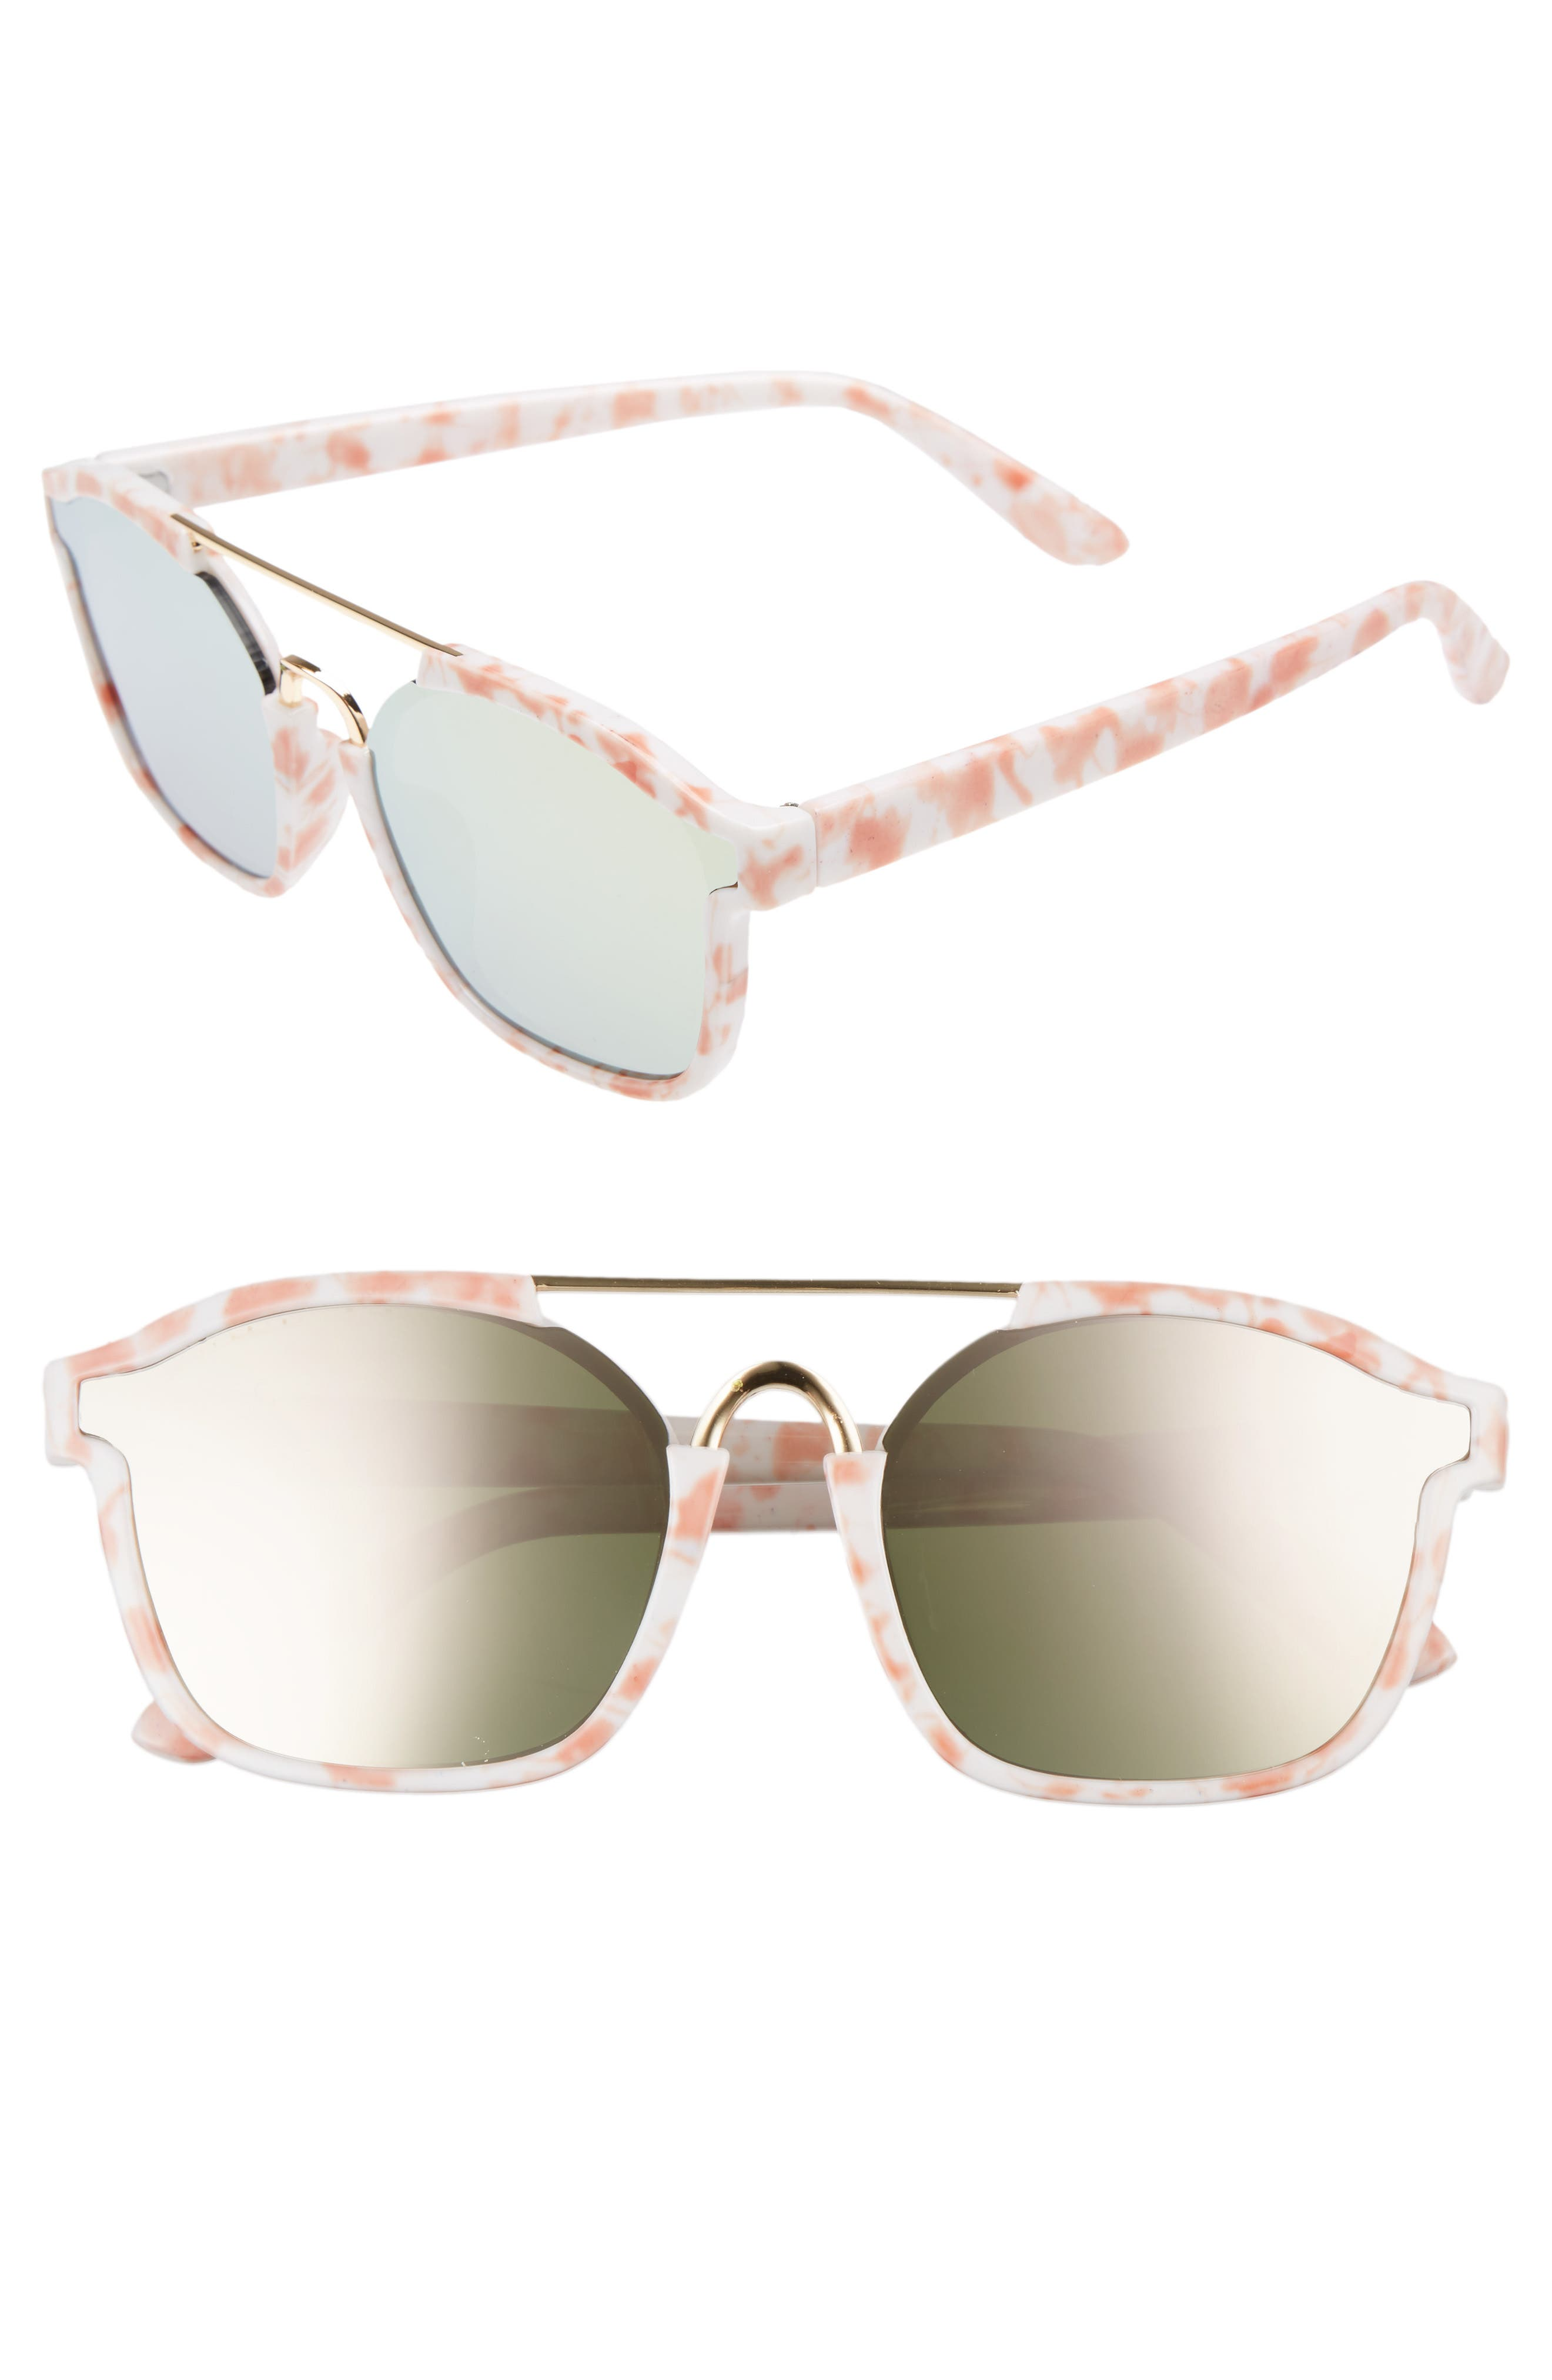 Leith Eve Bank 57mm Mirrored Sunglasses